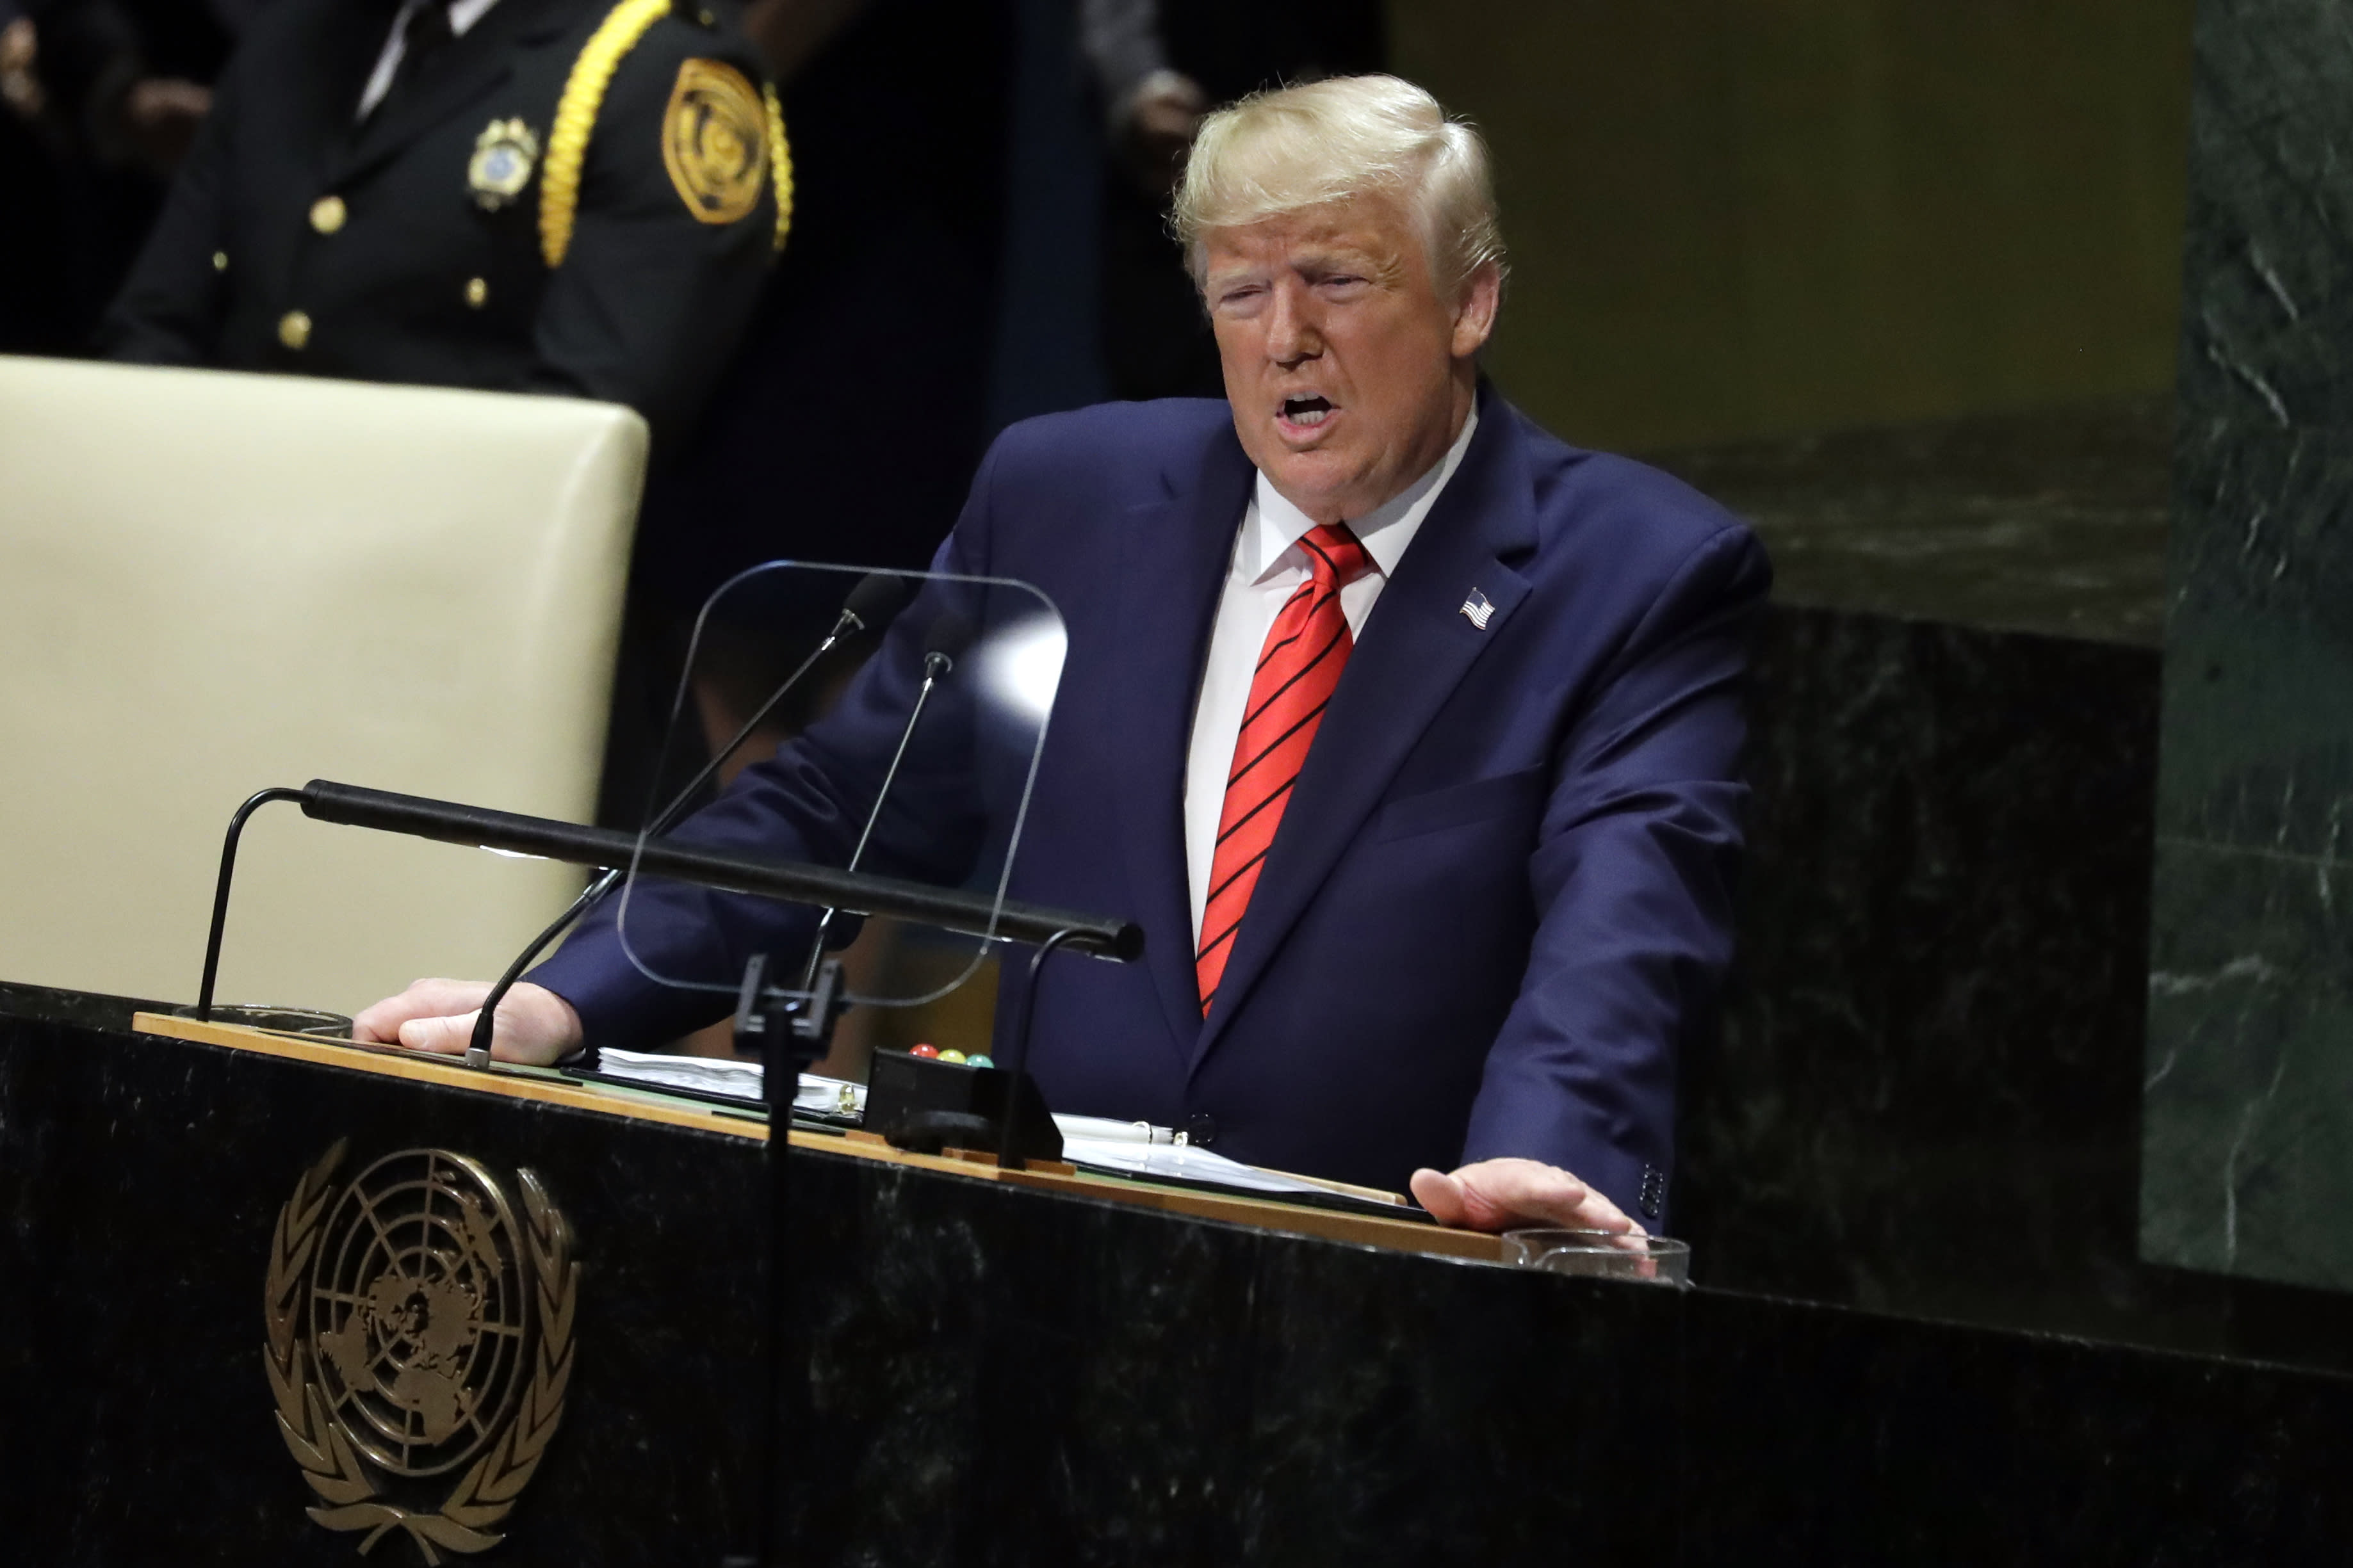 President Donald Trump delivers remarks to the 74th session of the United Nations General Assembly, Tuesday, Sept. 24, 2019, in New York. (AP Photo/Evan Vucci)